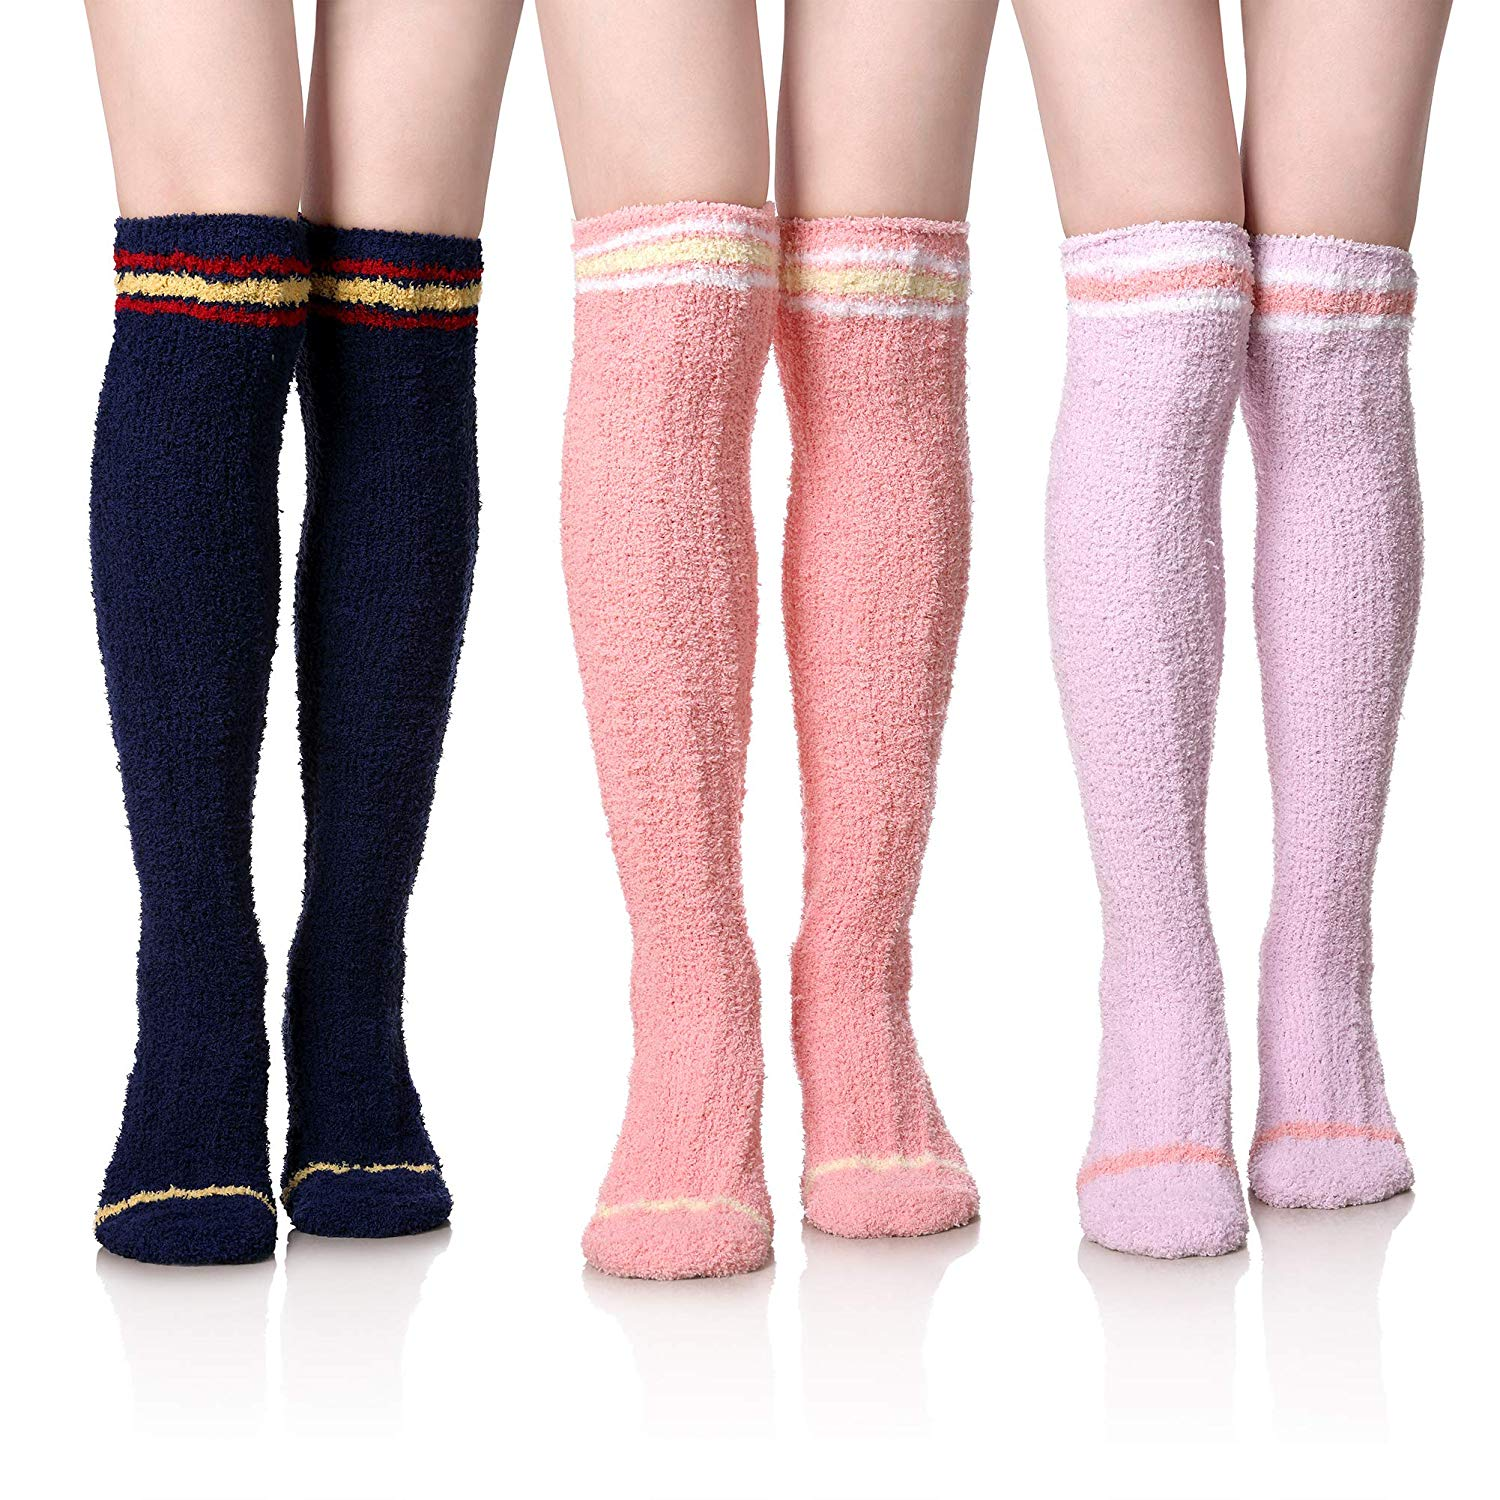 b4505c618 Get Quotations · Womens Girls Soft Warm Over The Knee High Stockings Winter  Plush Fuzzy Socks